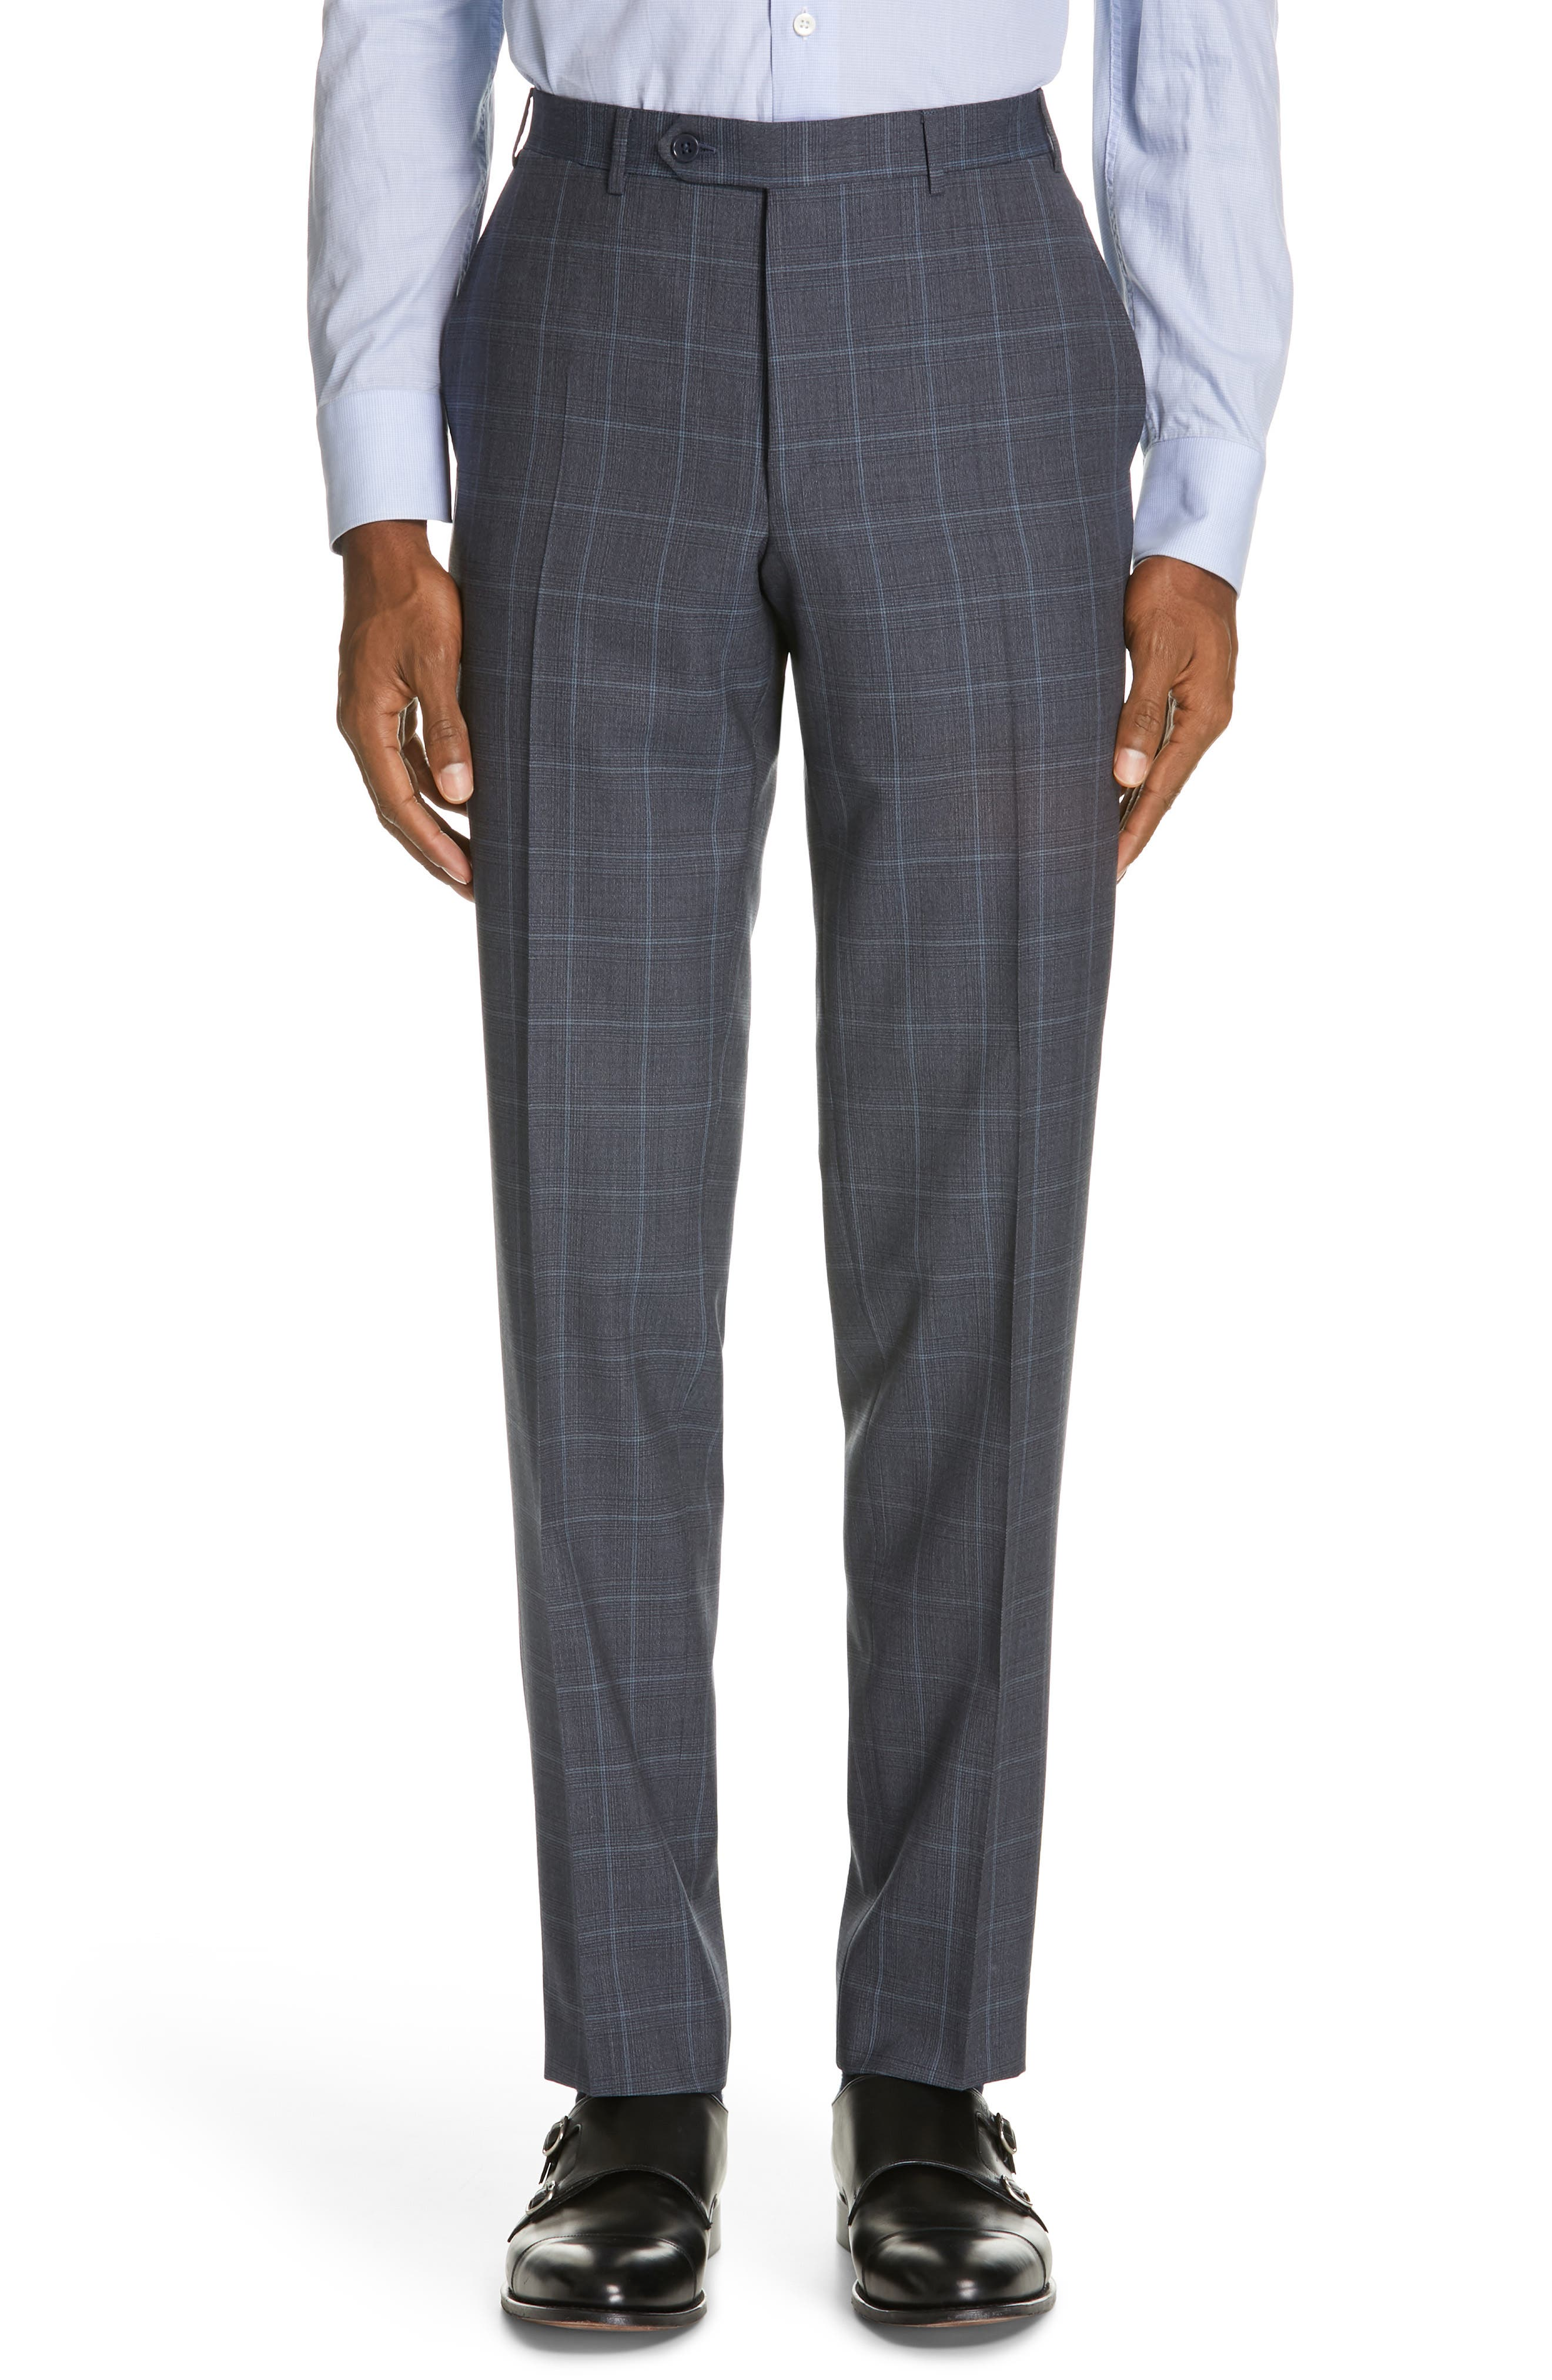 CANALI, Siena Soft Classic Fit Plaid Wool Suit, Alternate thumbnail 6, color, CHARCOAL